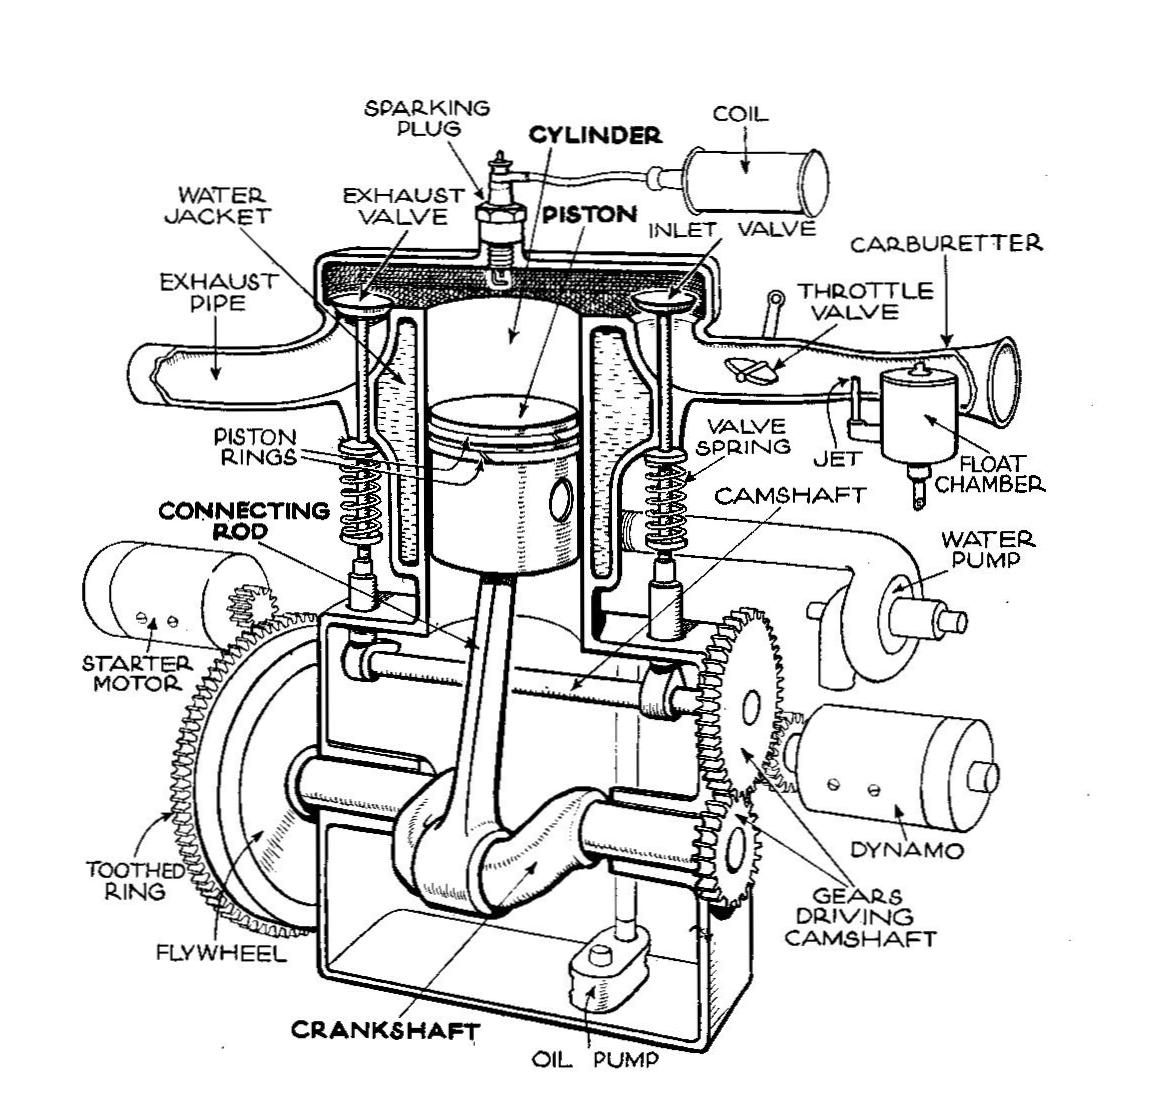 Flathead engine on 6 position rotary switch schematic in